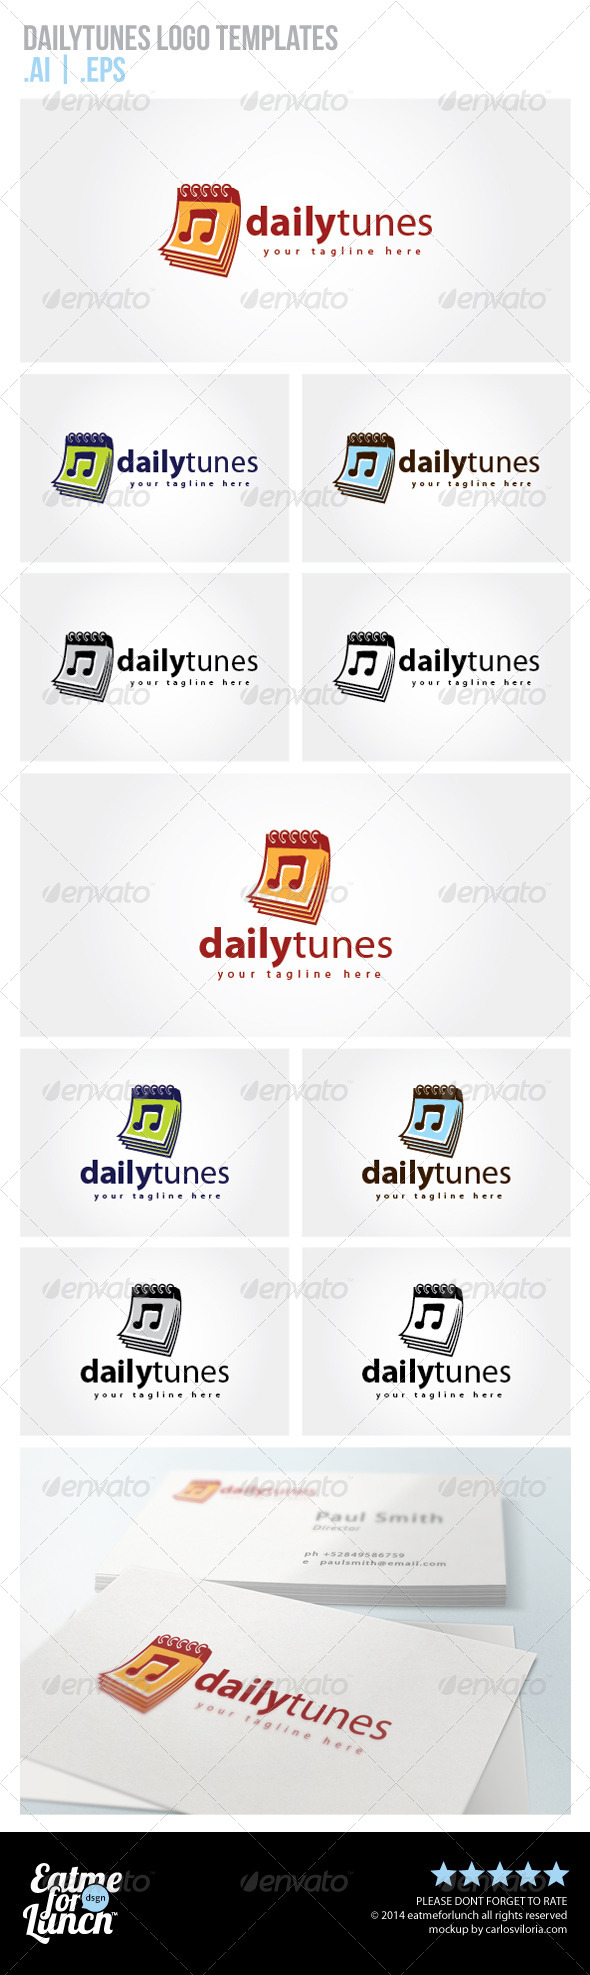 Daily Tunes Logo Templates - Objects Logo Templates